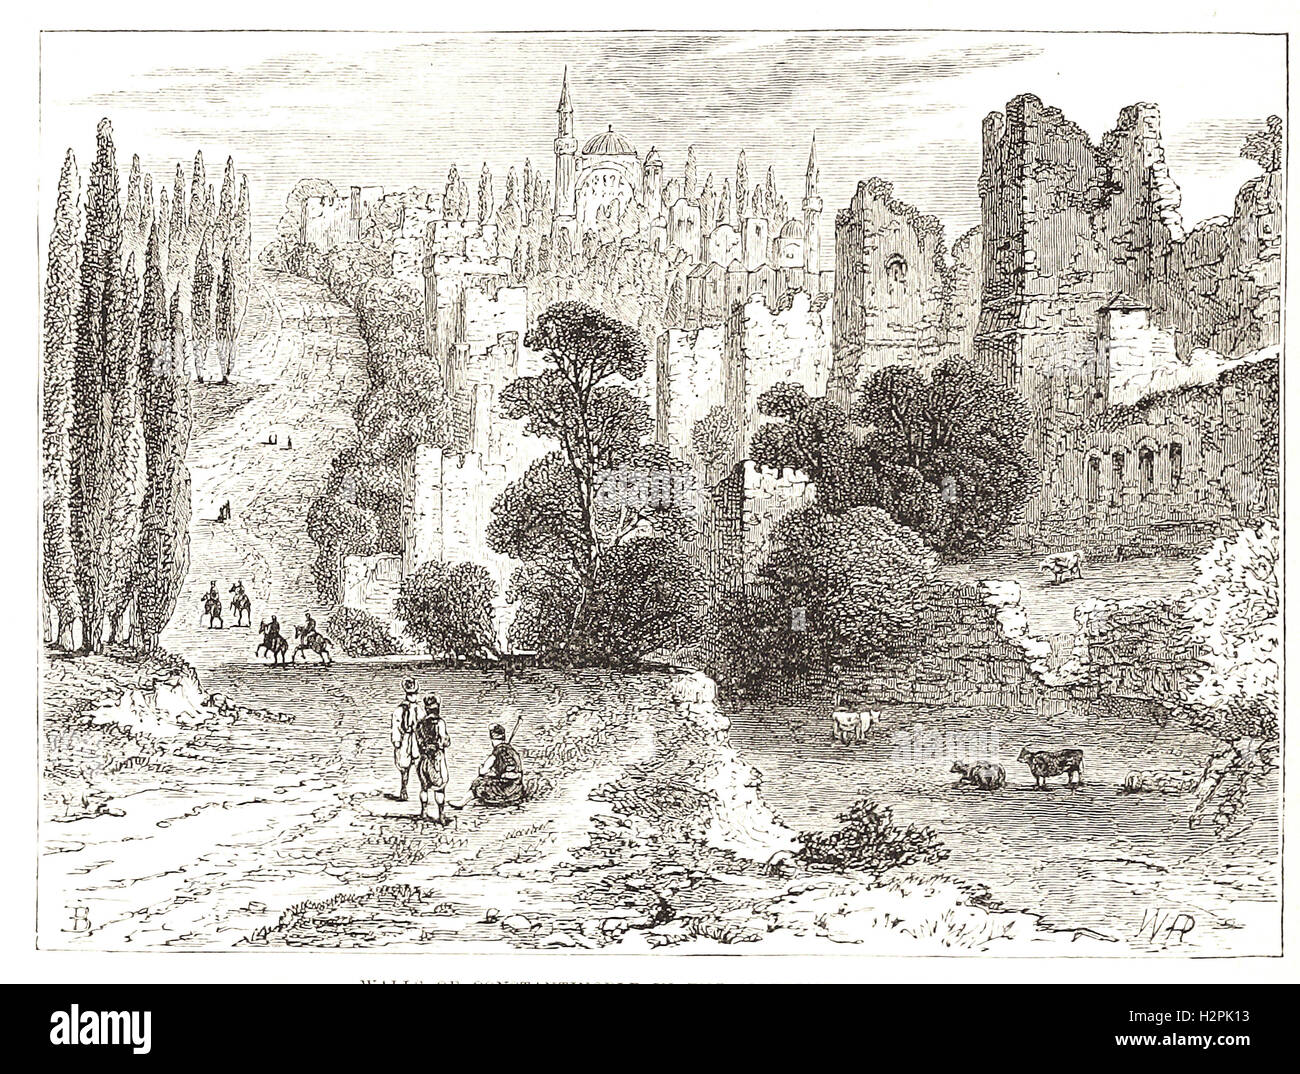 WALLS OF CONSTANTINOPLE IN THE SIXTEENTH CENTURY.- from 'Cassell's Illustrated Universal History' - - Stock Image